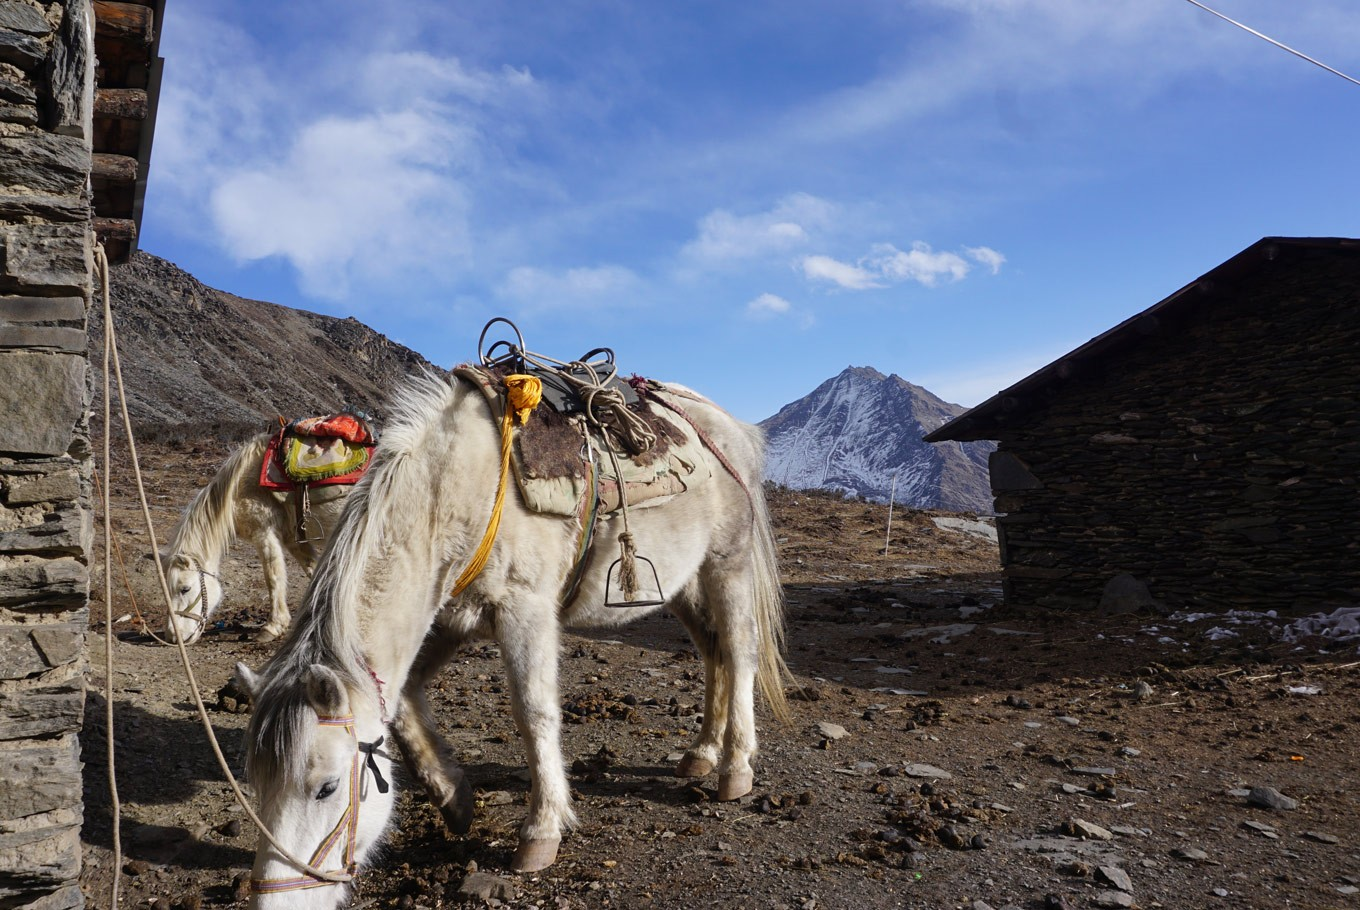 Mount Siguniang: Sacred place for Tibetans, paradise for climbers